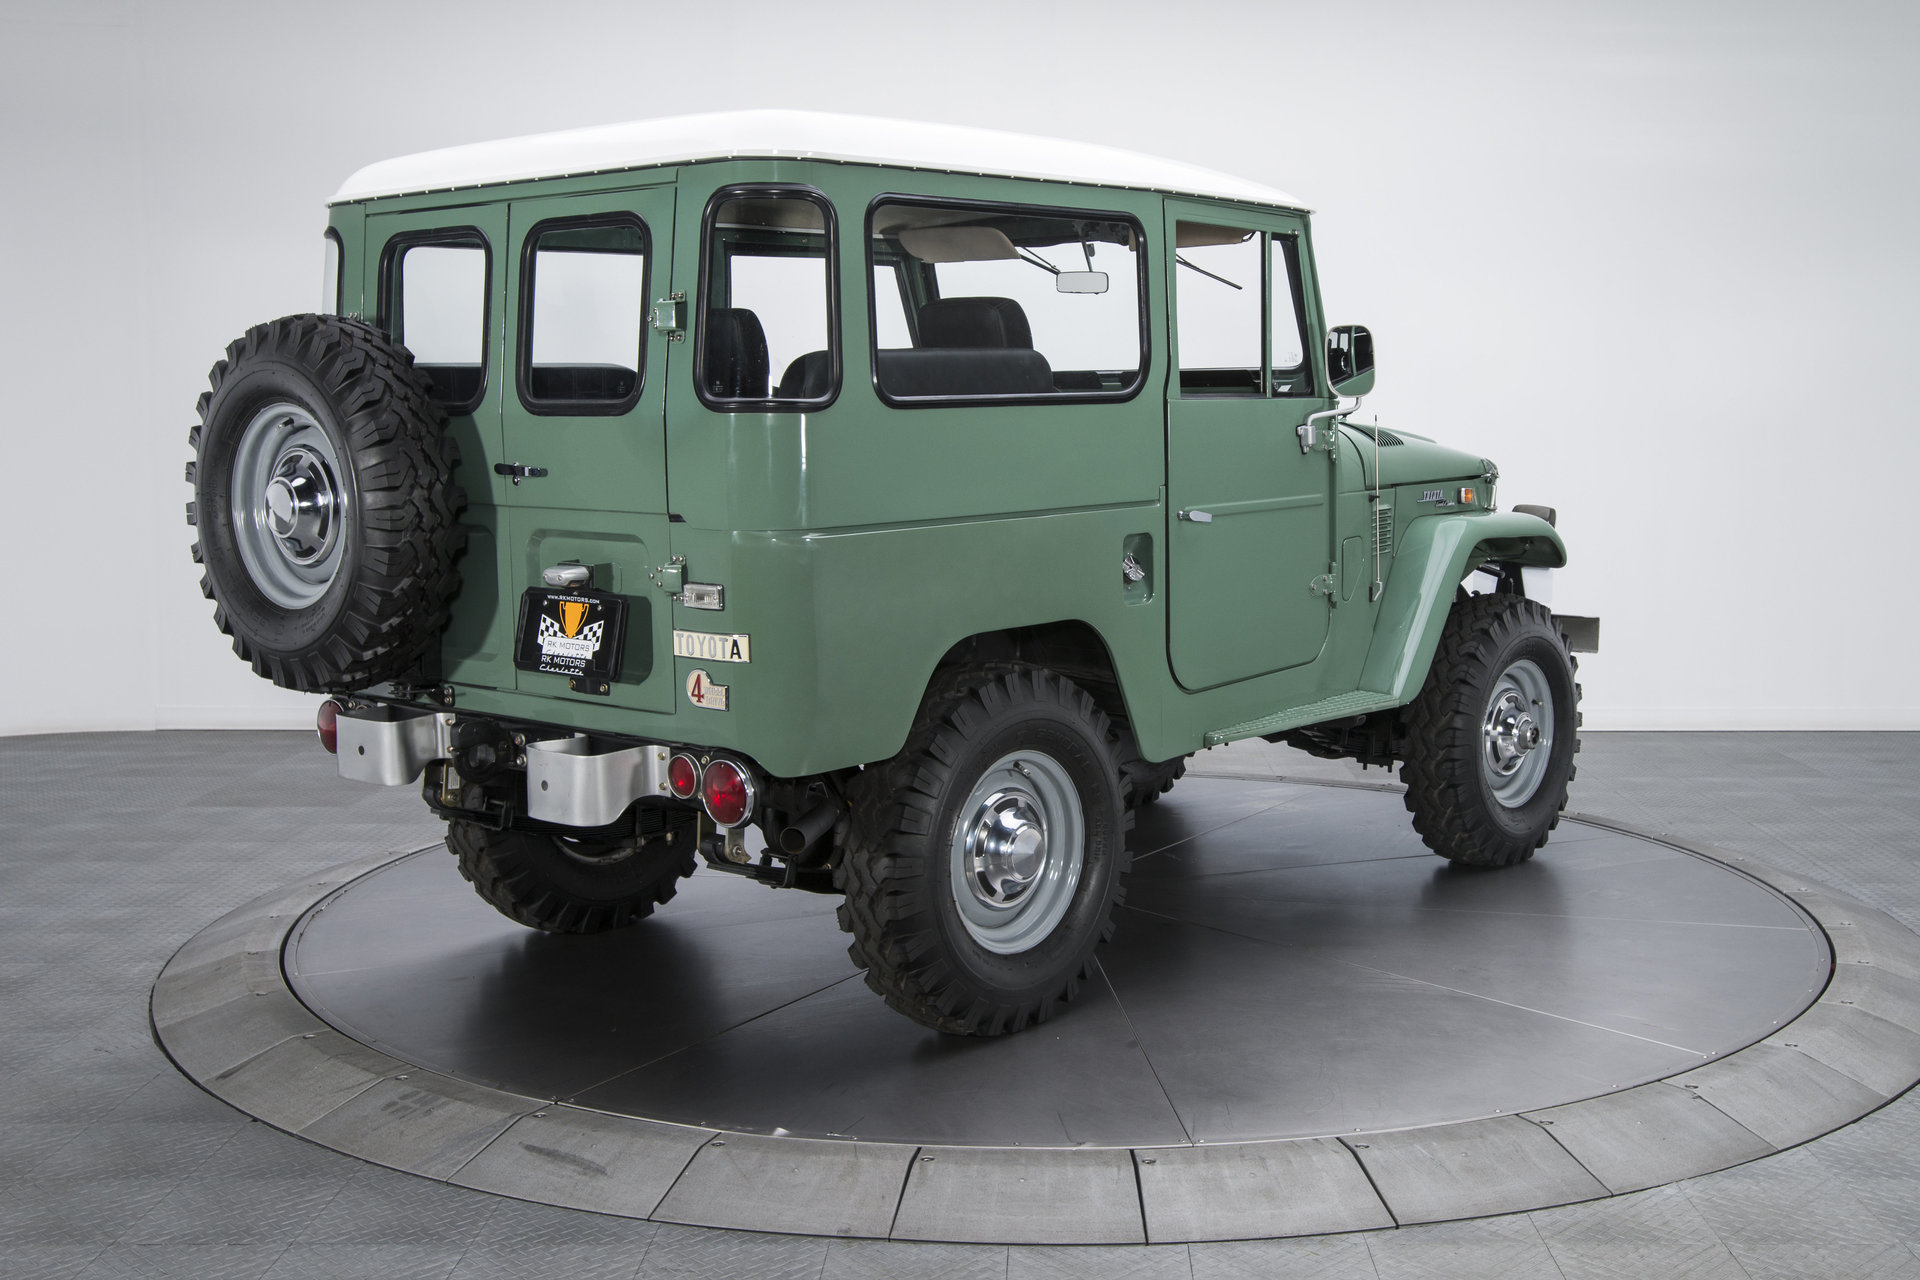 1973 Toyota Land Cruiser Berlin Motors Owners Manual For Sale